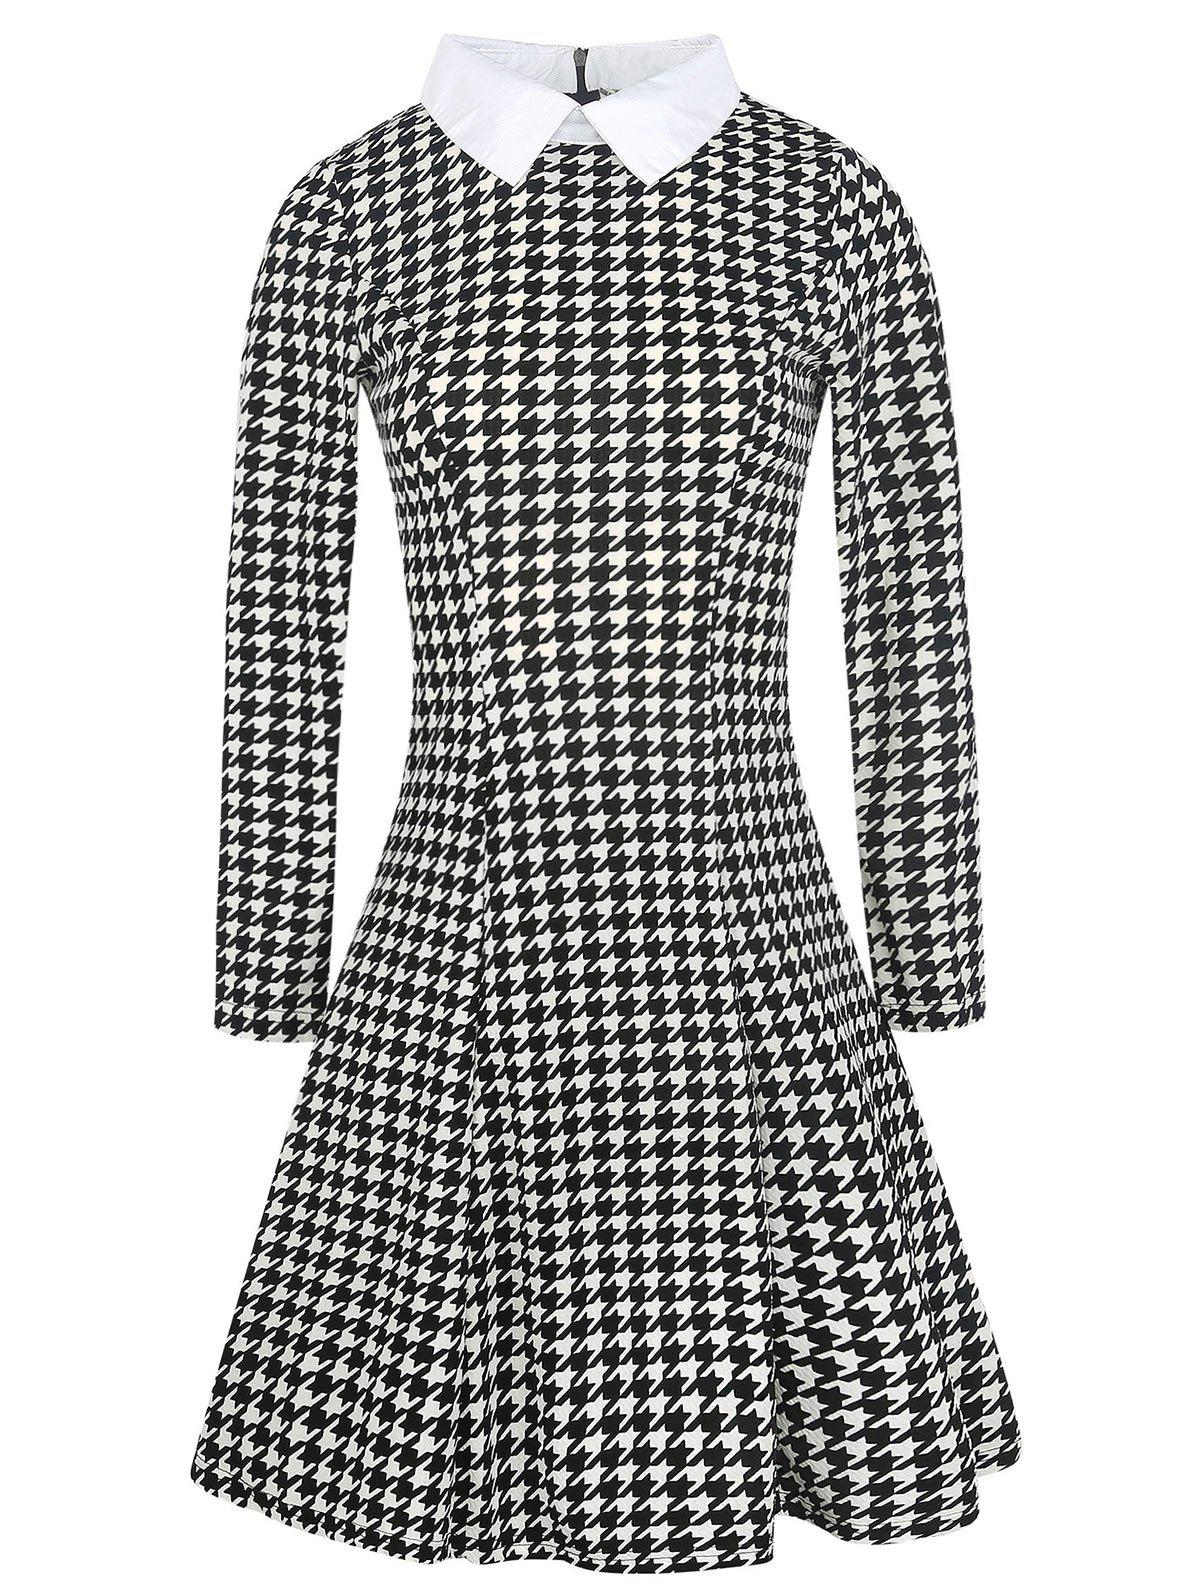 Store Flat Neck Houndstooth Print Fit and Flare Dress